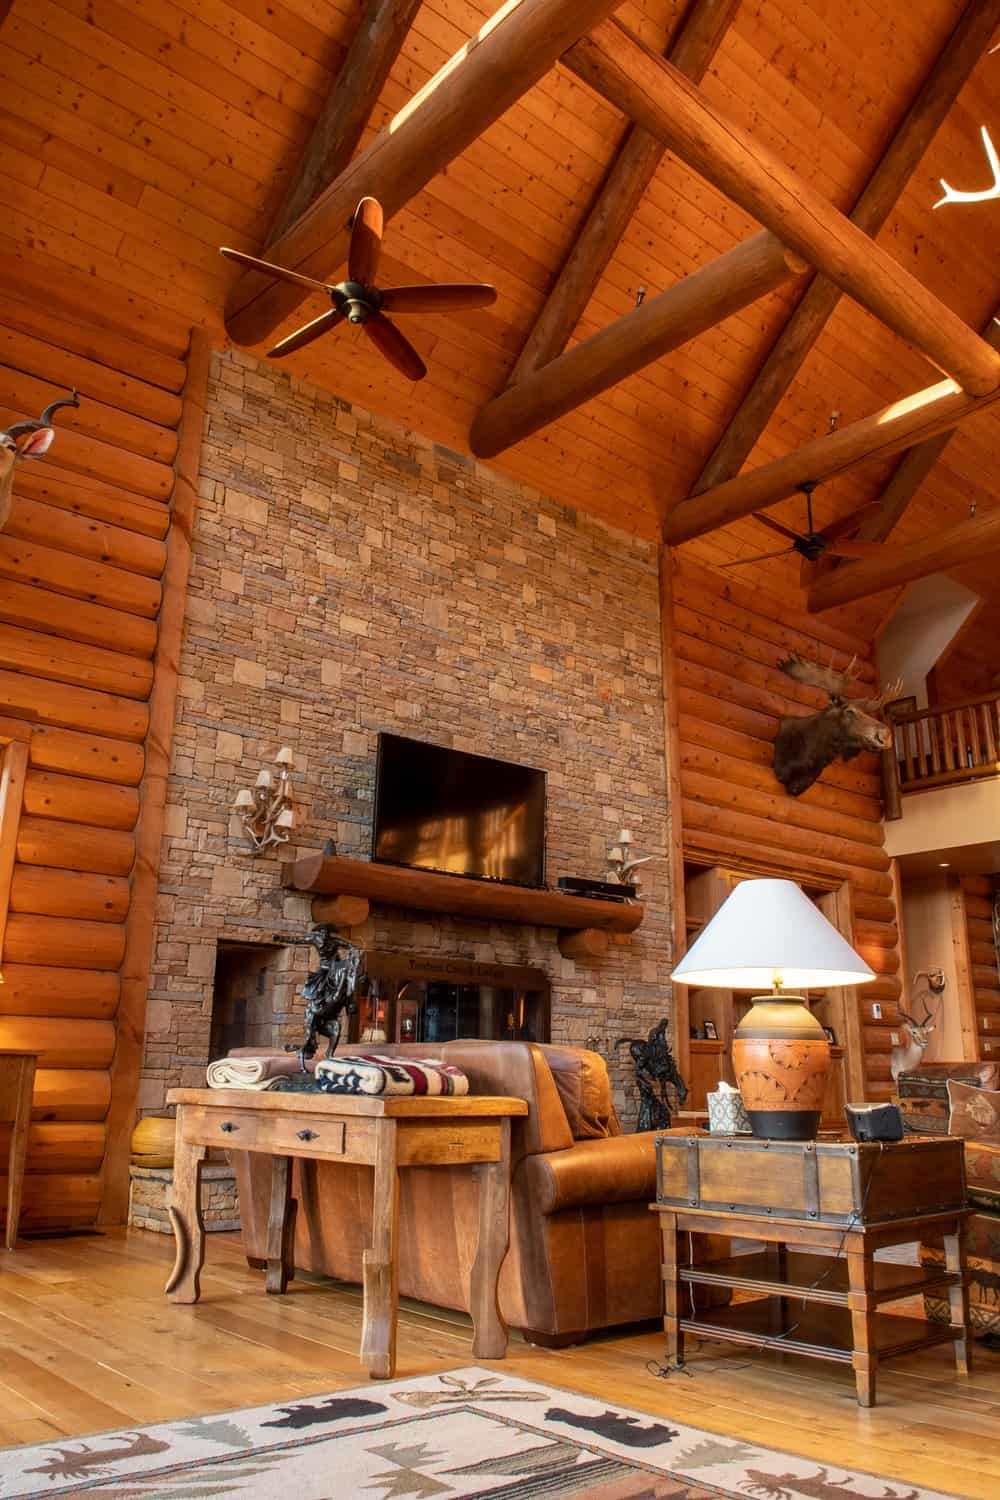 This angle of the living room shows its tall arched ceiling with exposed wooden log beams supporting ceiling fans for ventilation. Images courtesy of Toptenrealestatedeals.com.